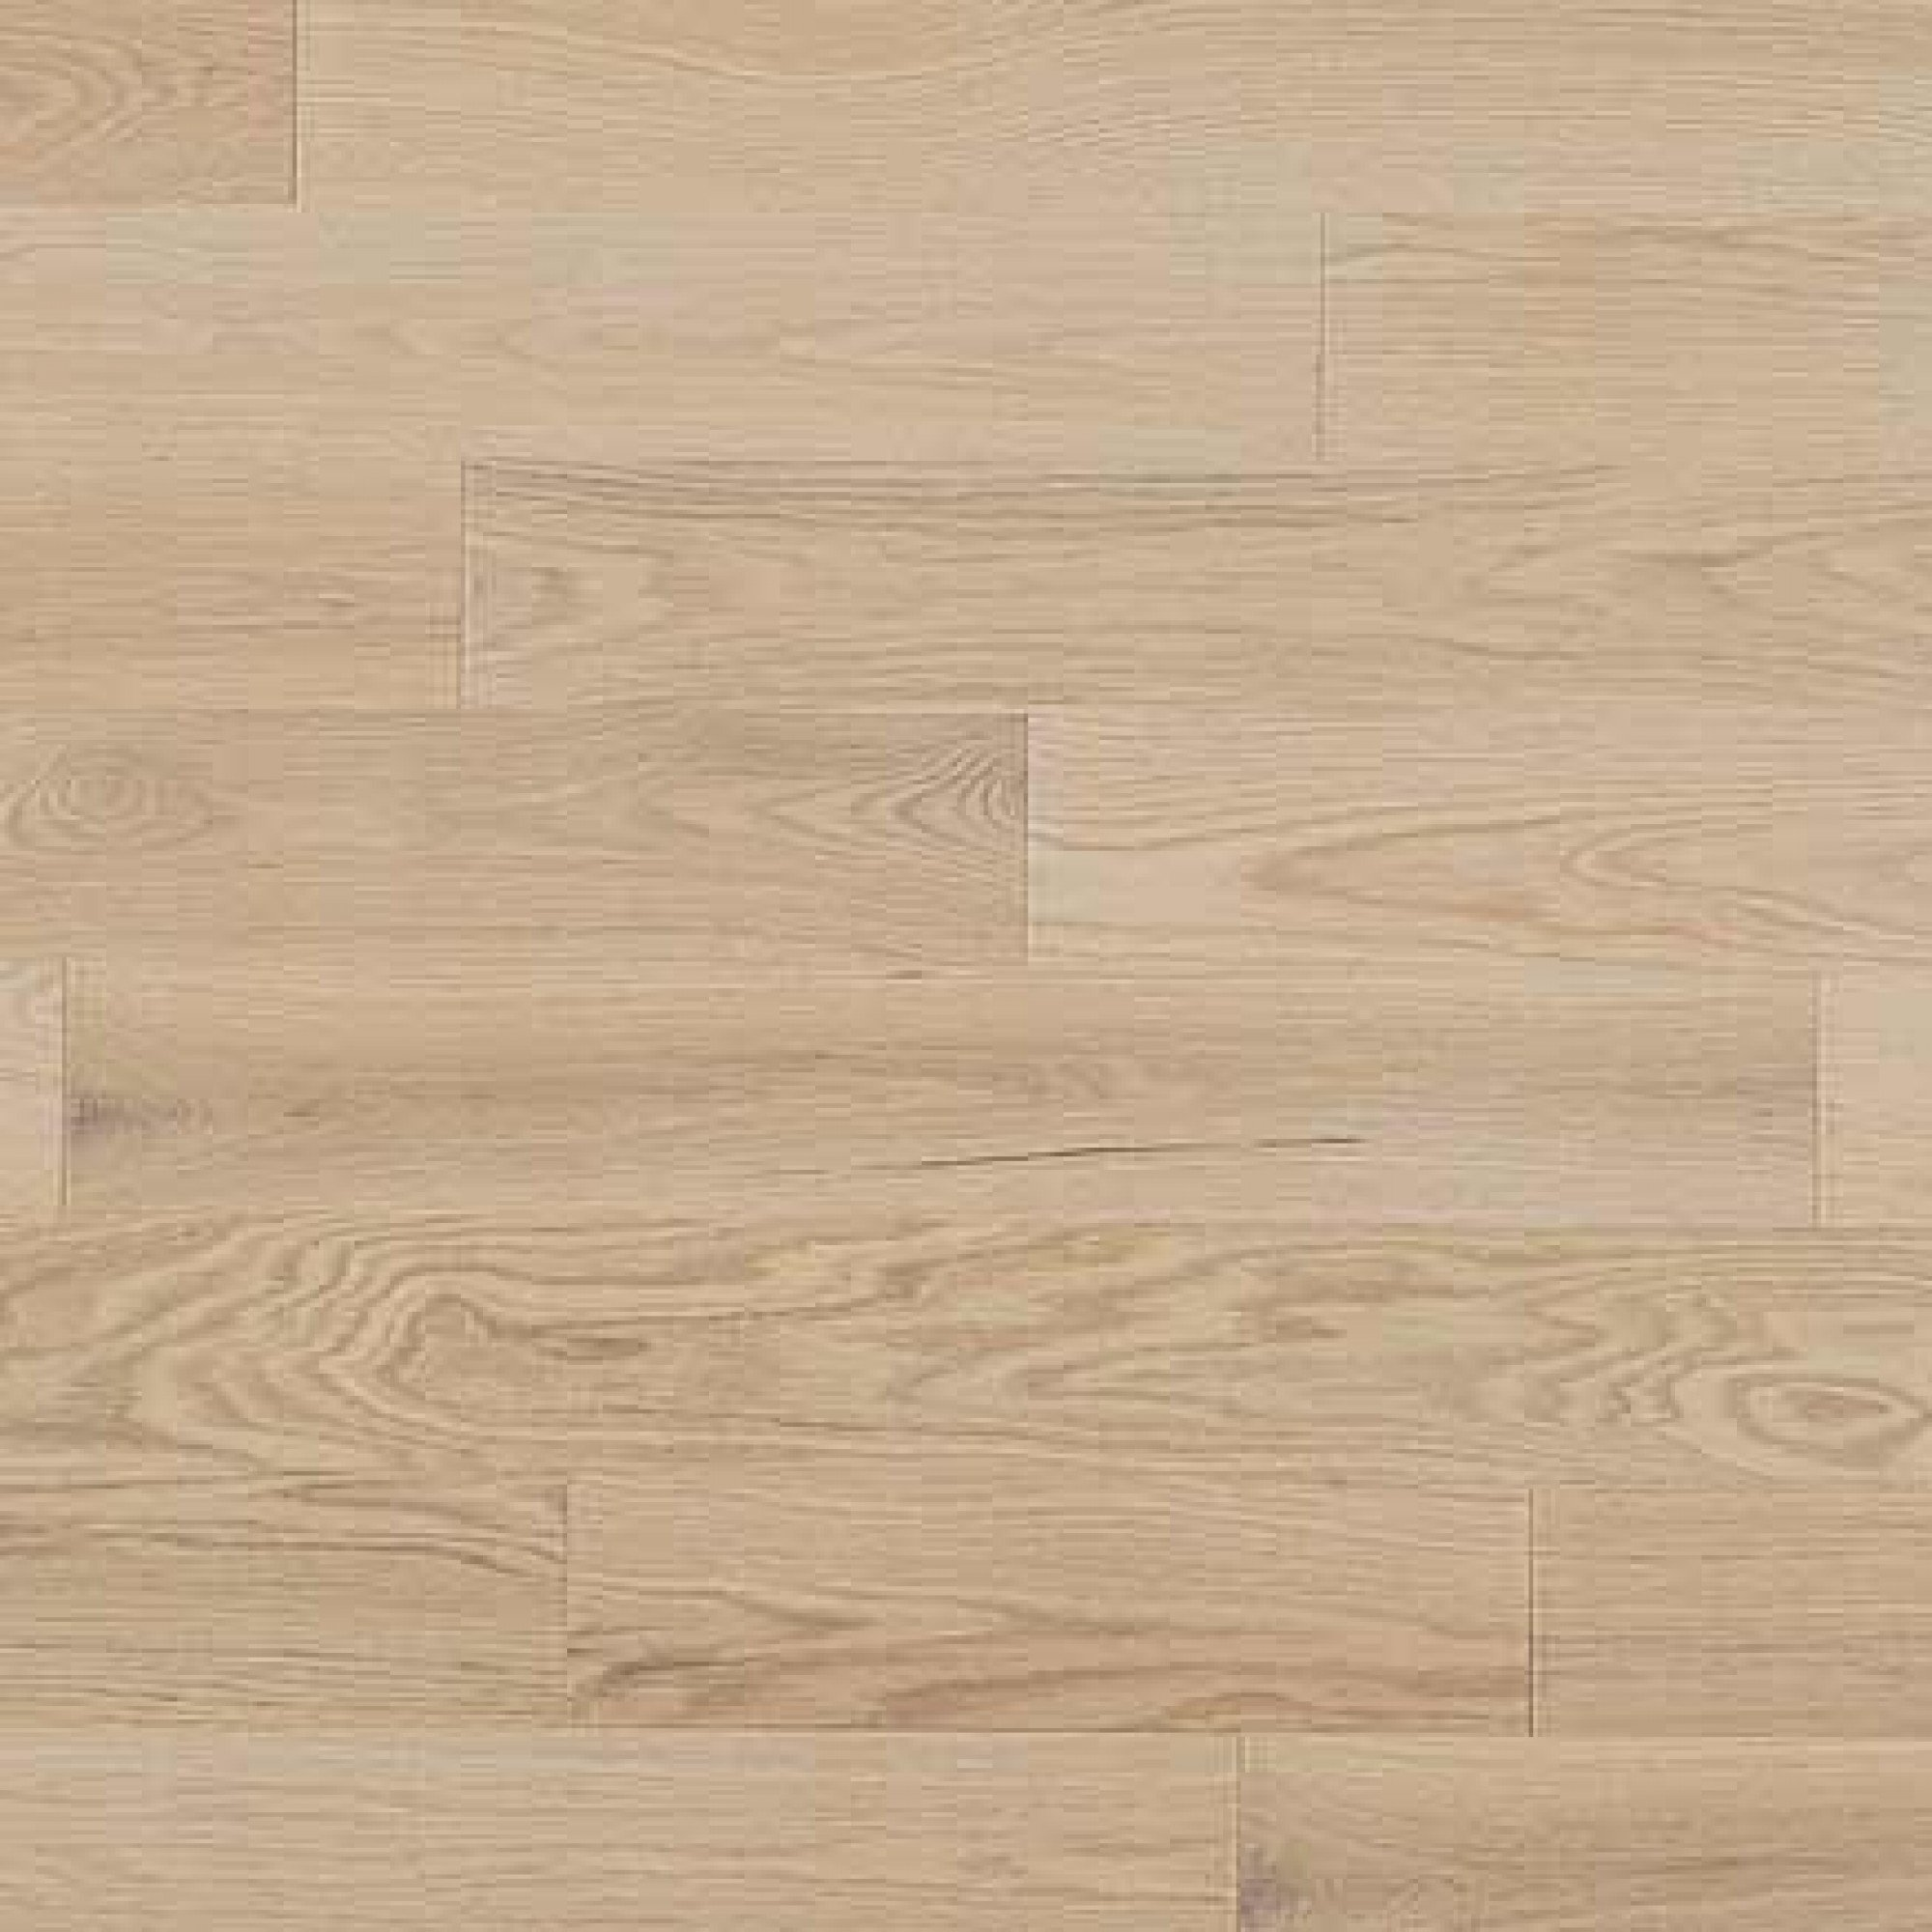 Alive Red Oak Isla Mirage Hardwood Floors